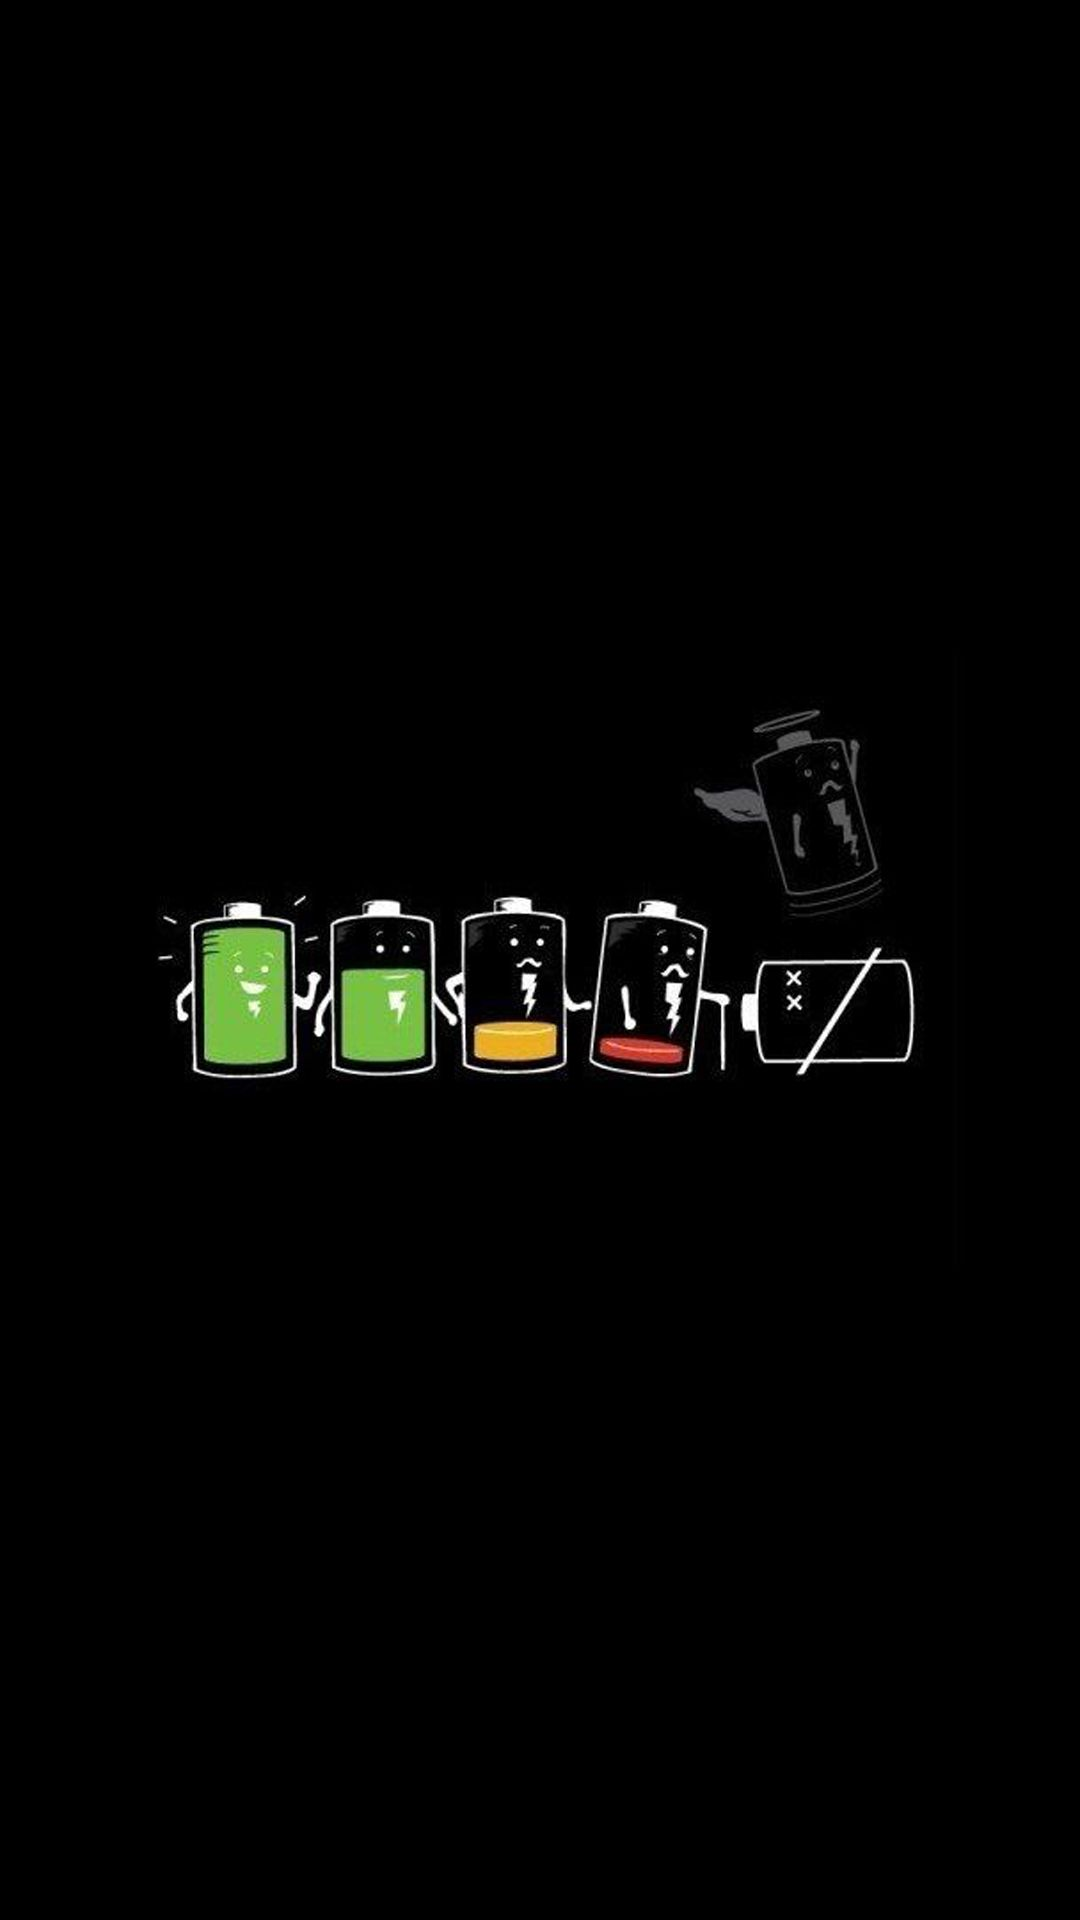 Battery Life Cycle Funny Iphone 6 Plus Wallpaper Funny Phone Wallpaper Funny Iphone Wallpaper Iphone Wallpaper